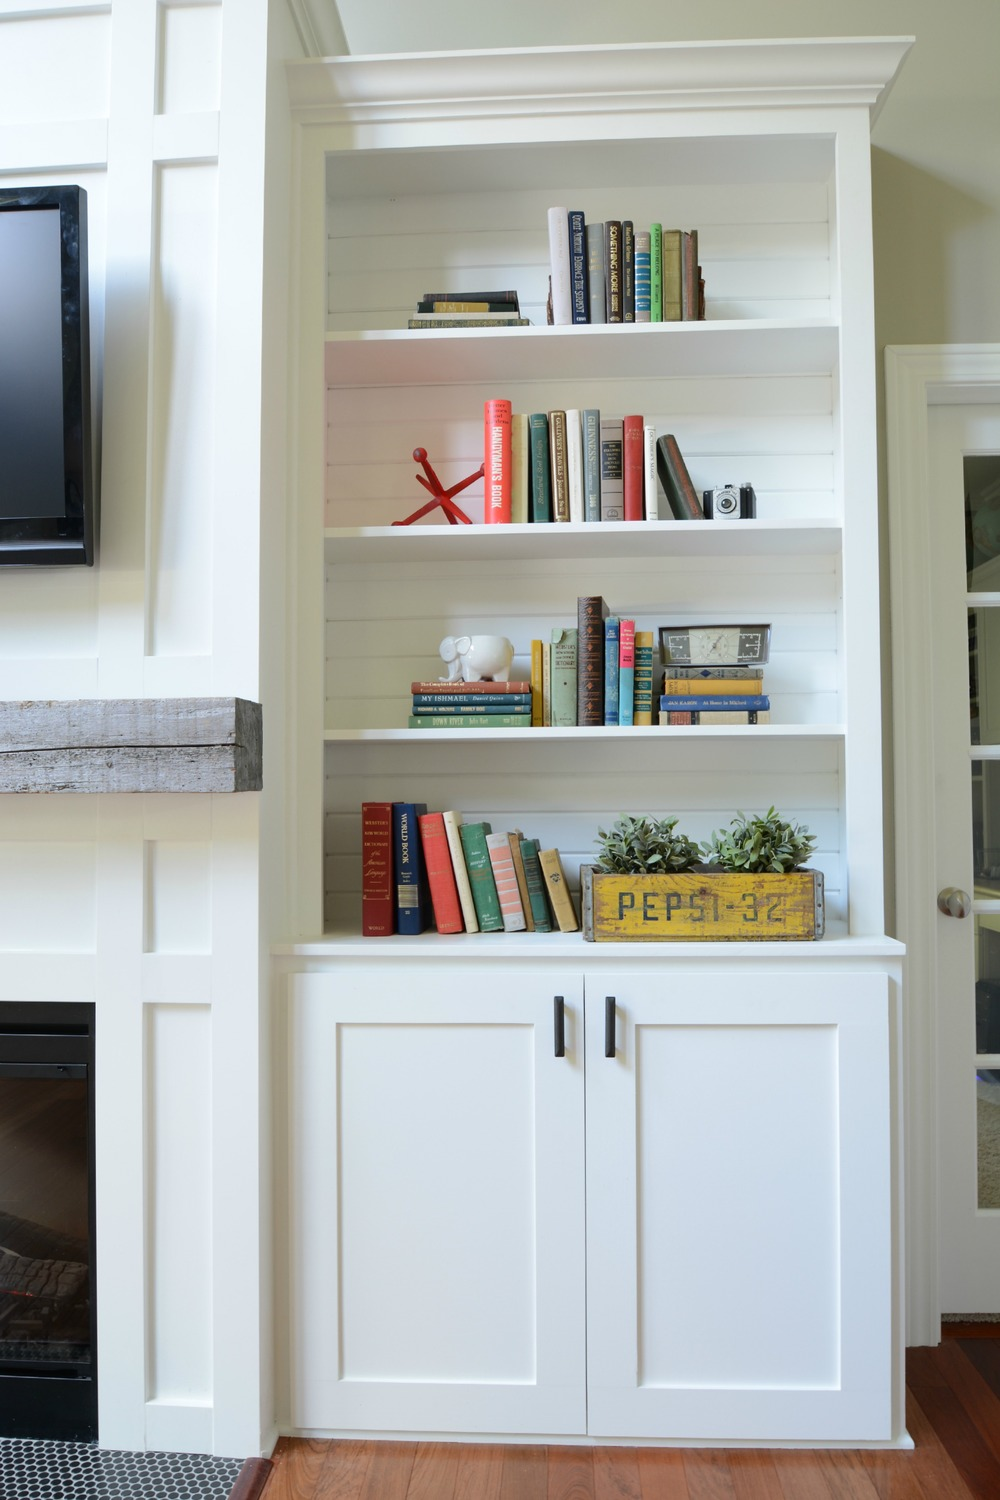 Living Room Built-In cabinets 6.jpg